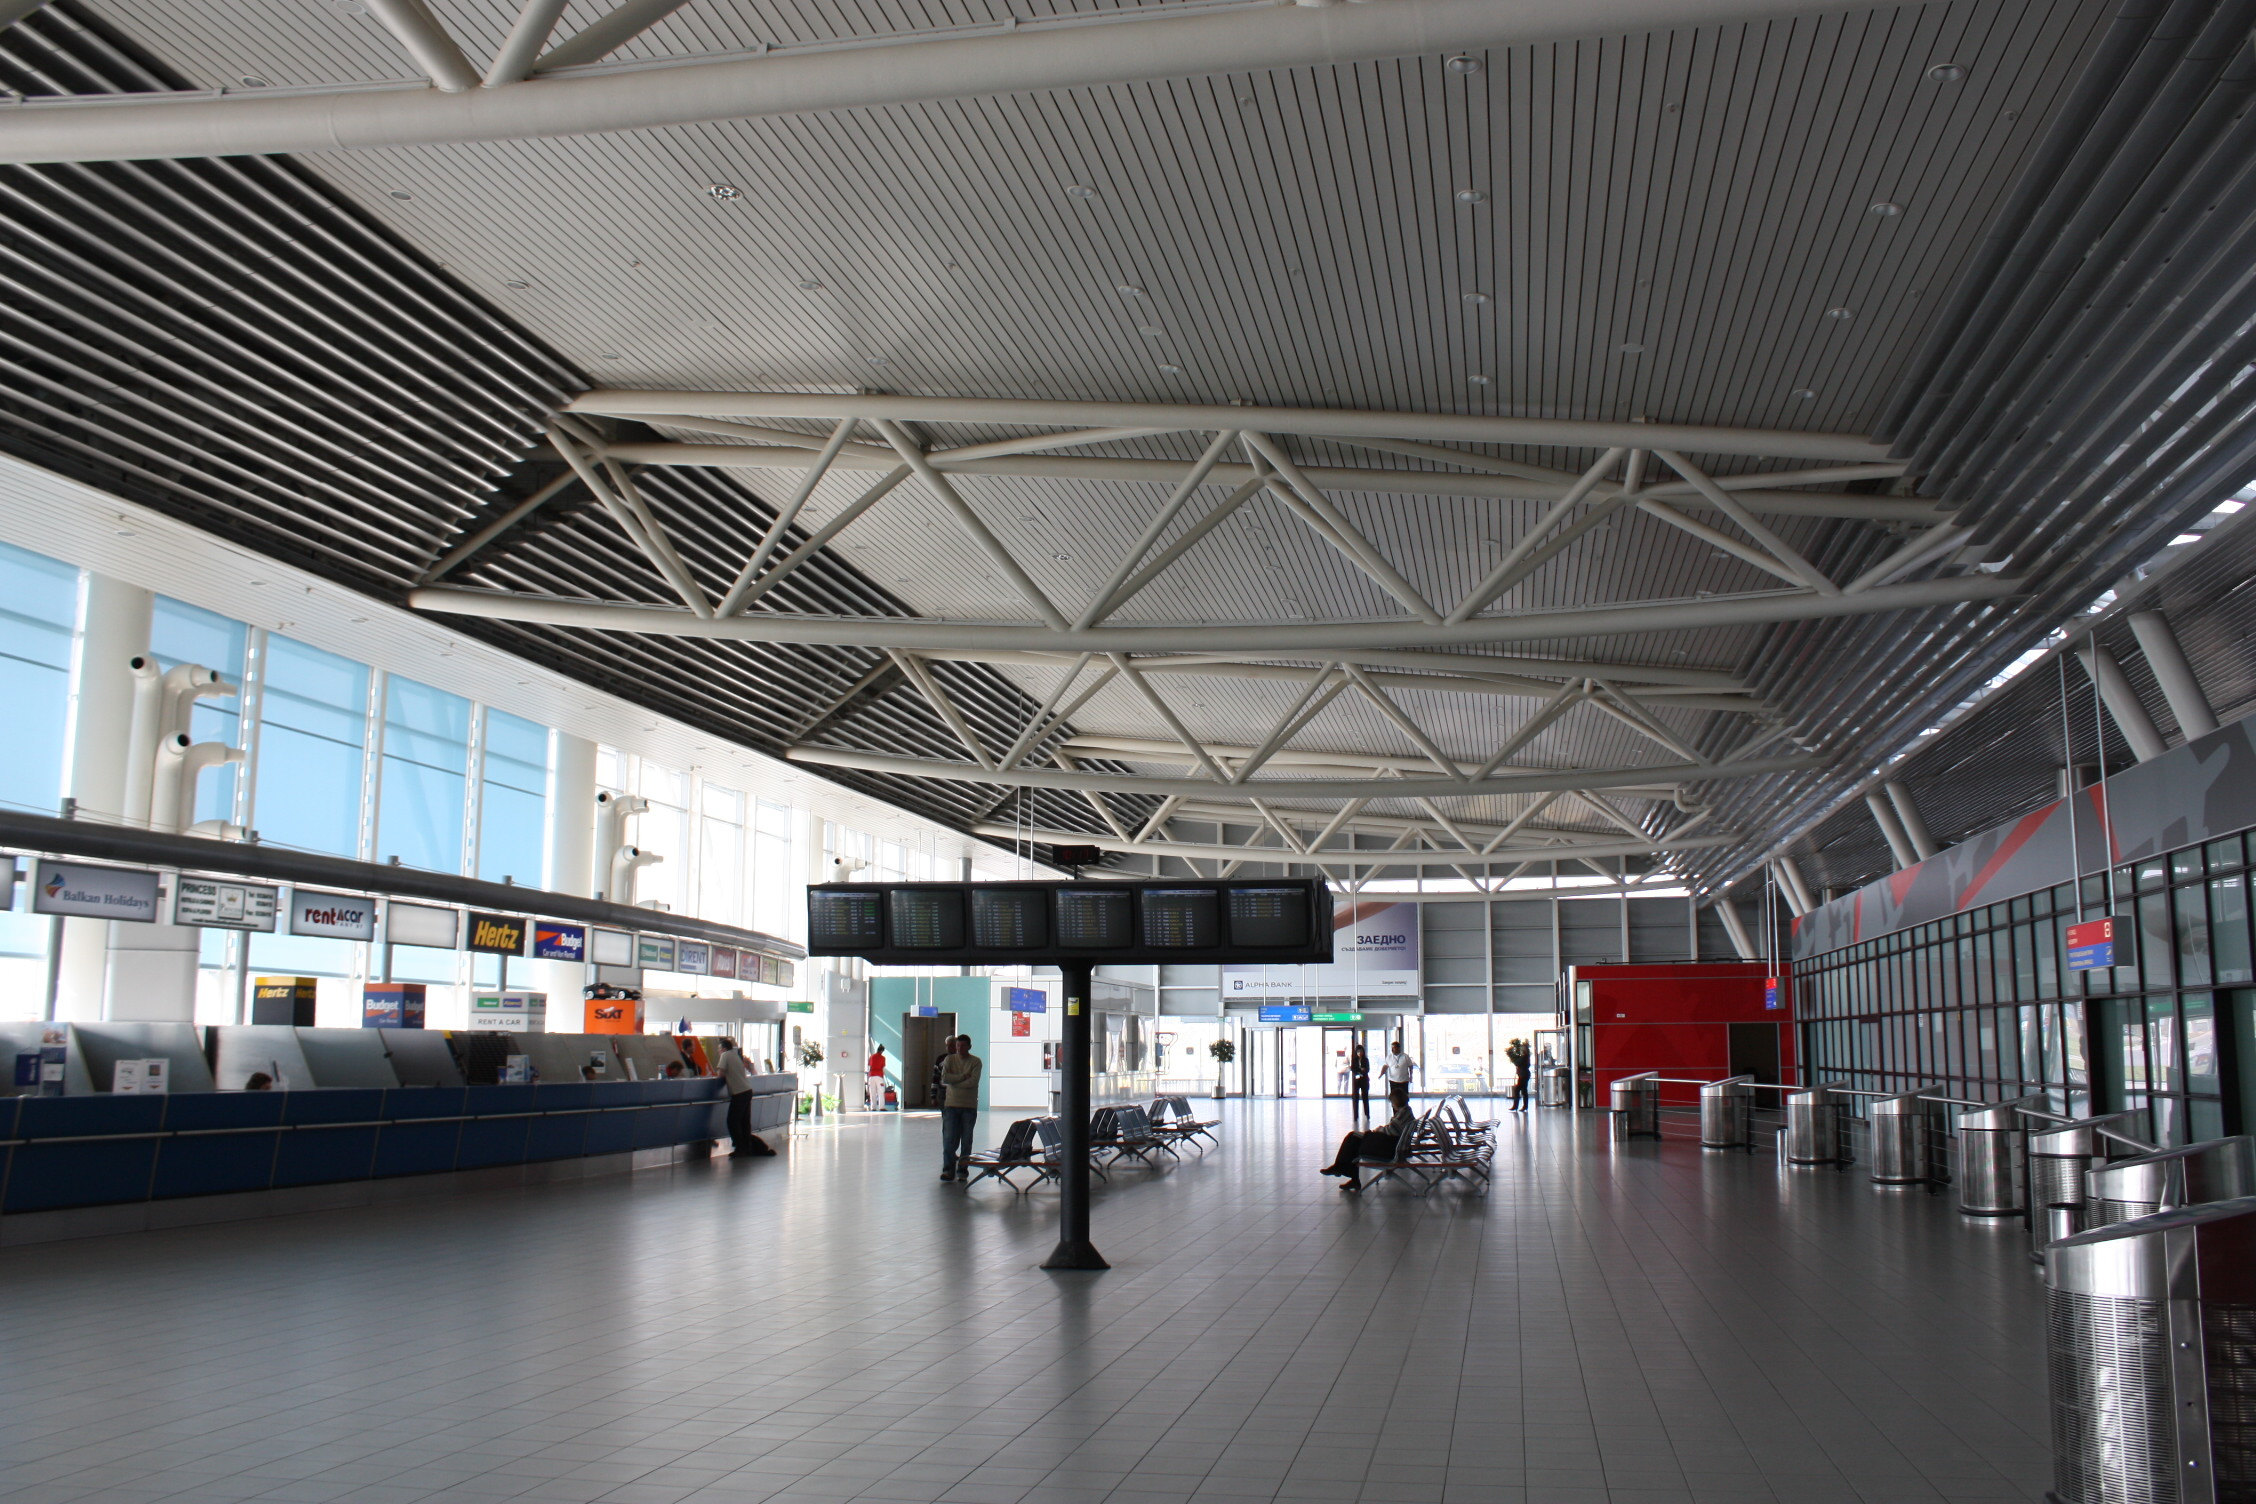 File:Inside Sofia Airport 20090409 033.JPG - Wikimedia Commons